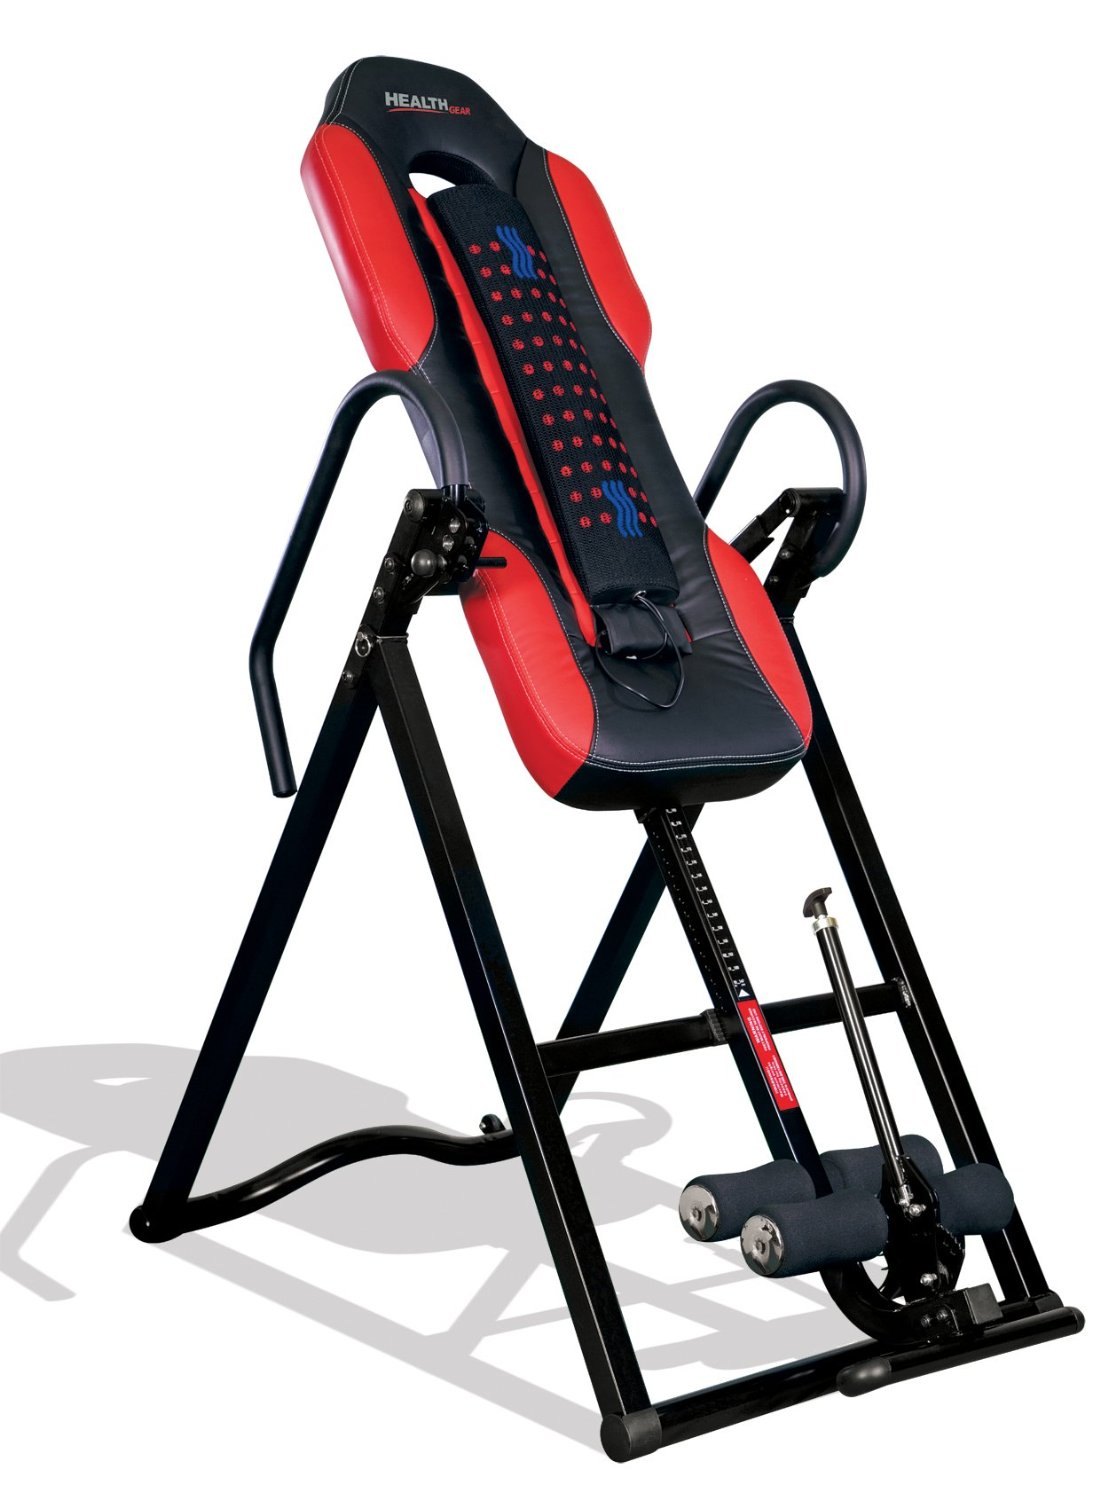 Health Gear ITM 5500 Inversion Table